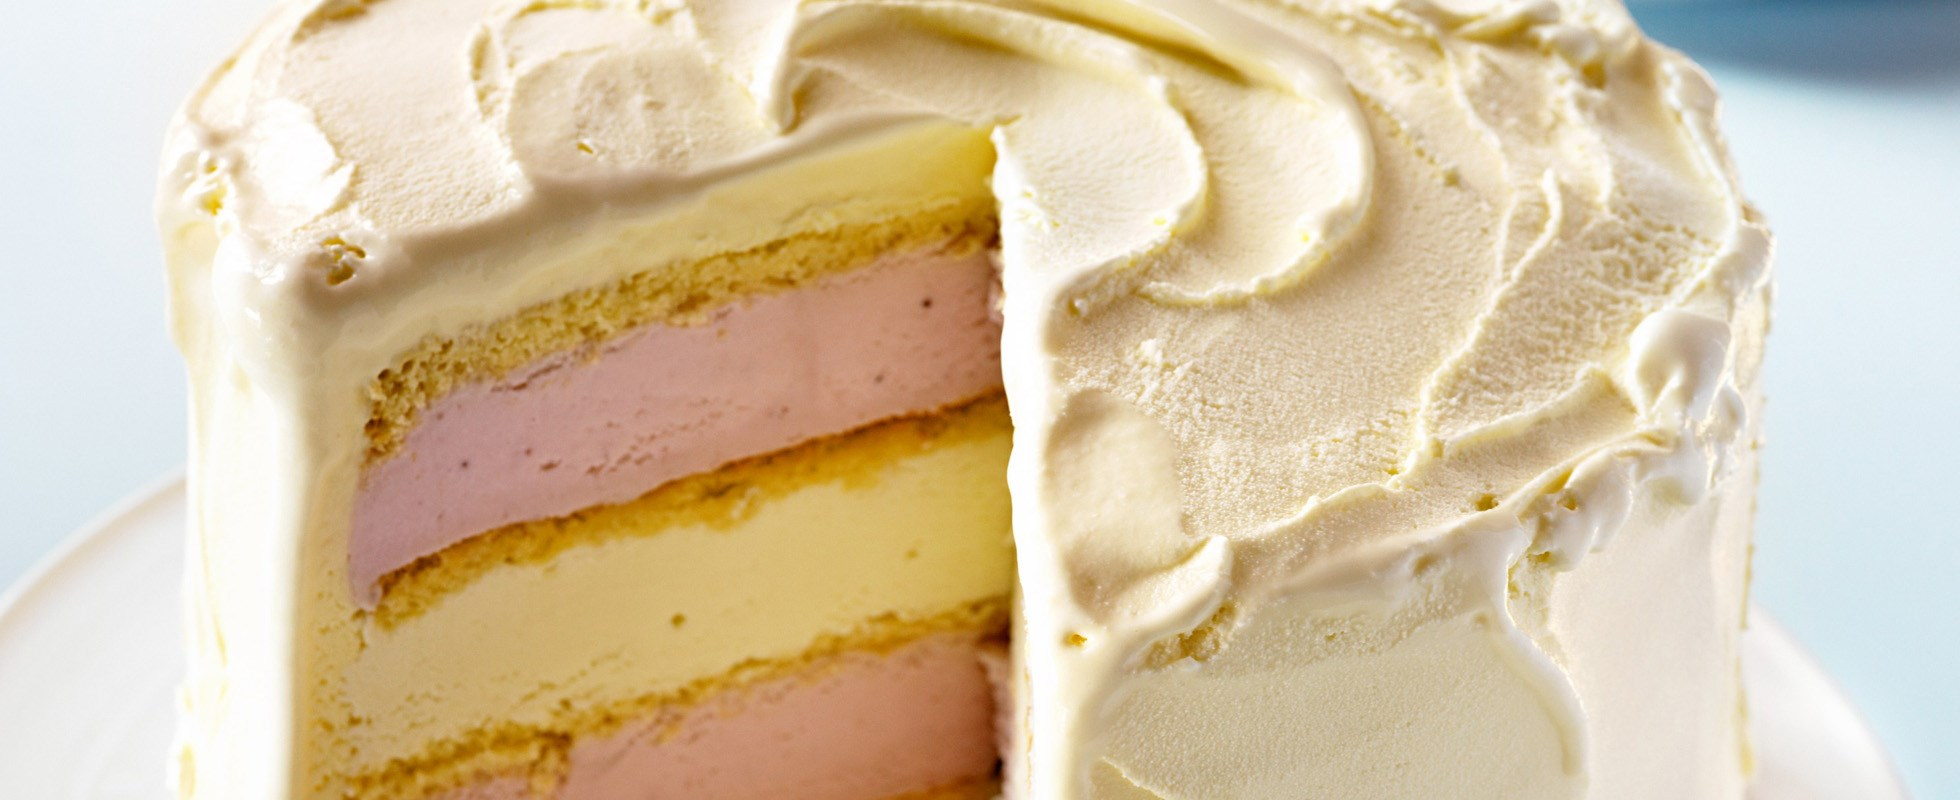 White chocolate and strawberry ice-cream cake